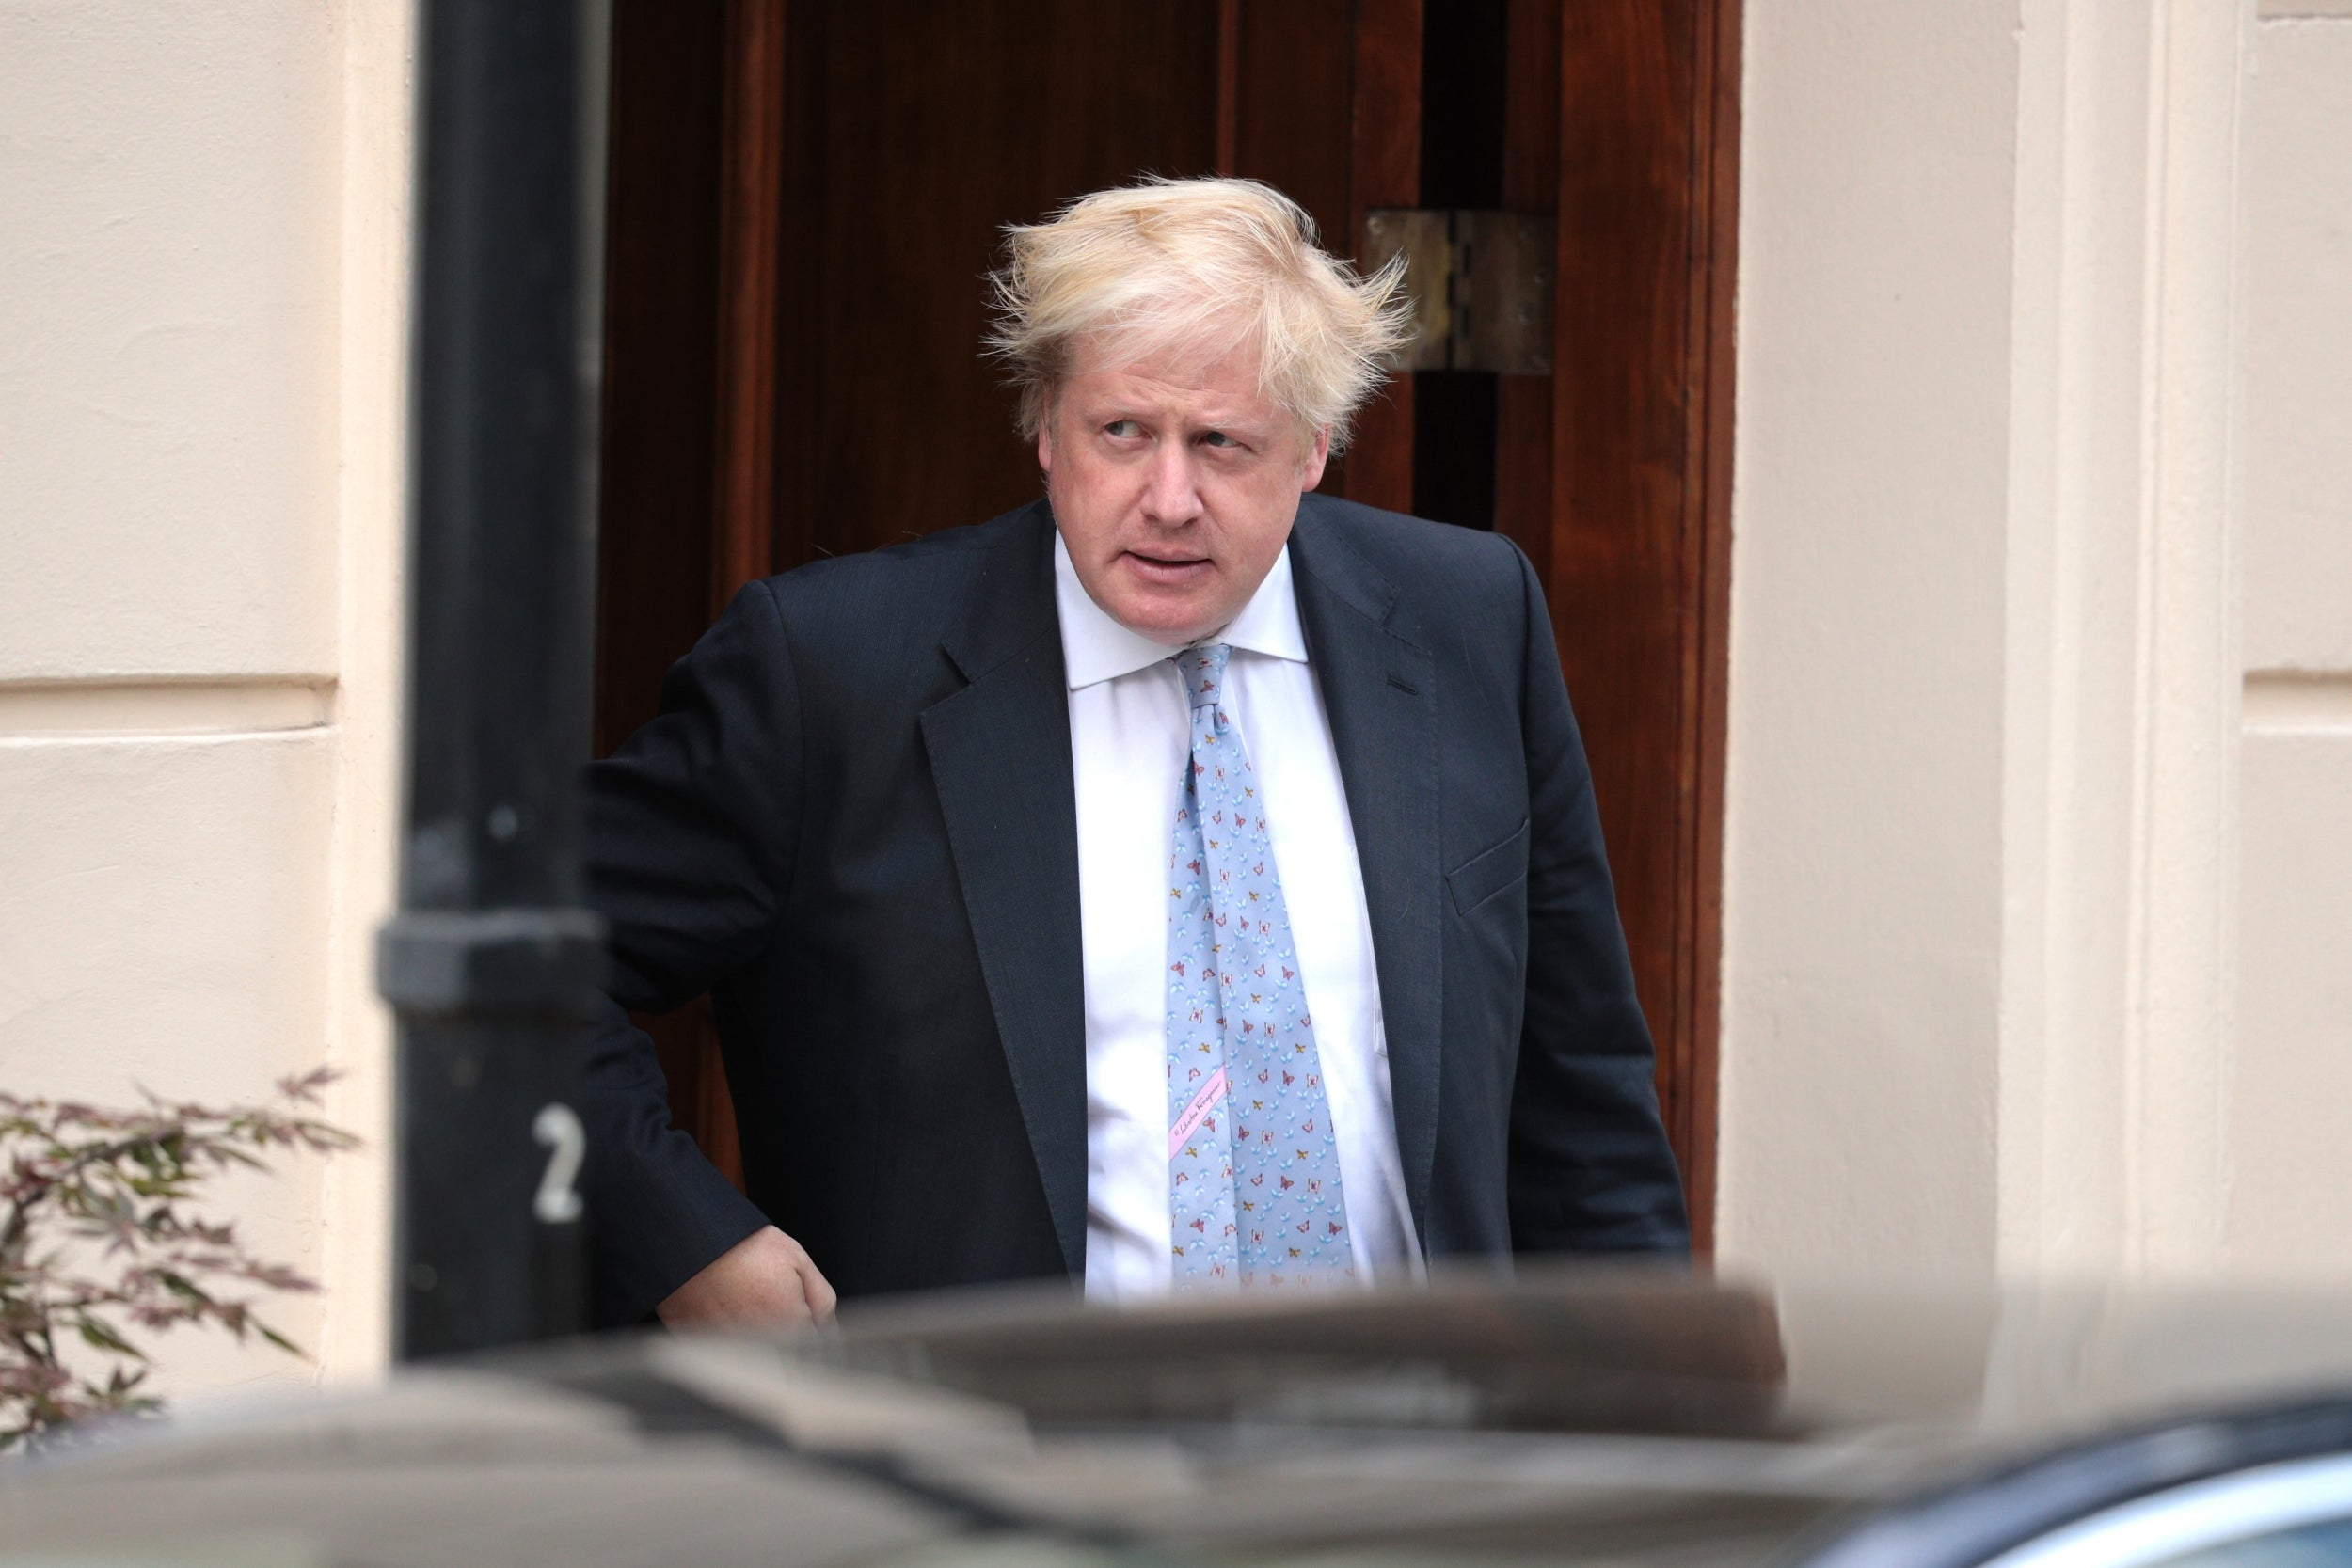 Boris Johnson burka comments - latest: Frail international secretary ordered to apologise for 'Islamophobic' remarks amid requires Tories to plot end away whip thumbnail